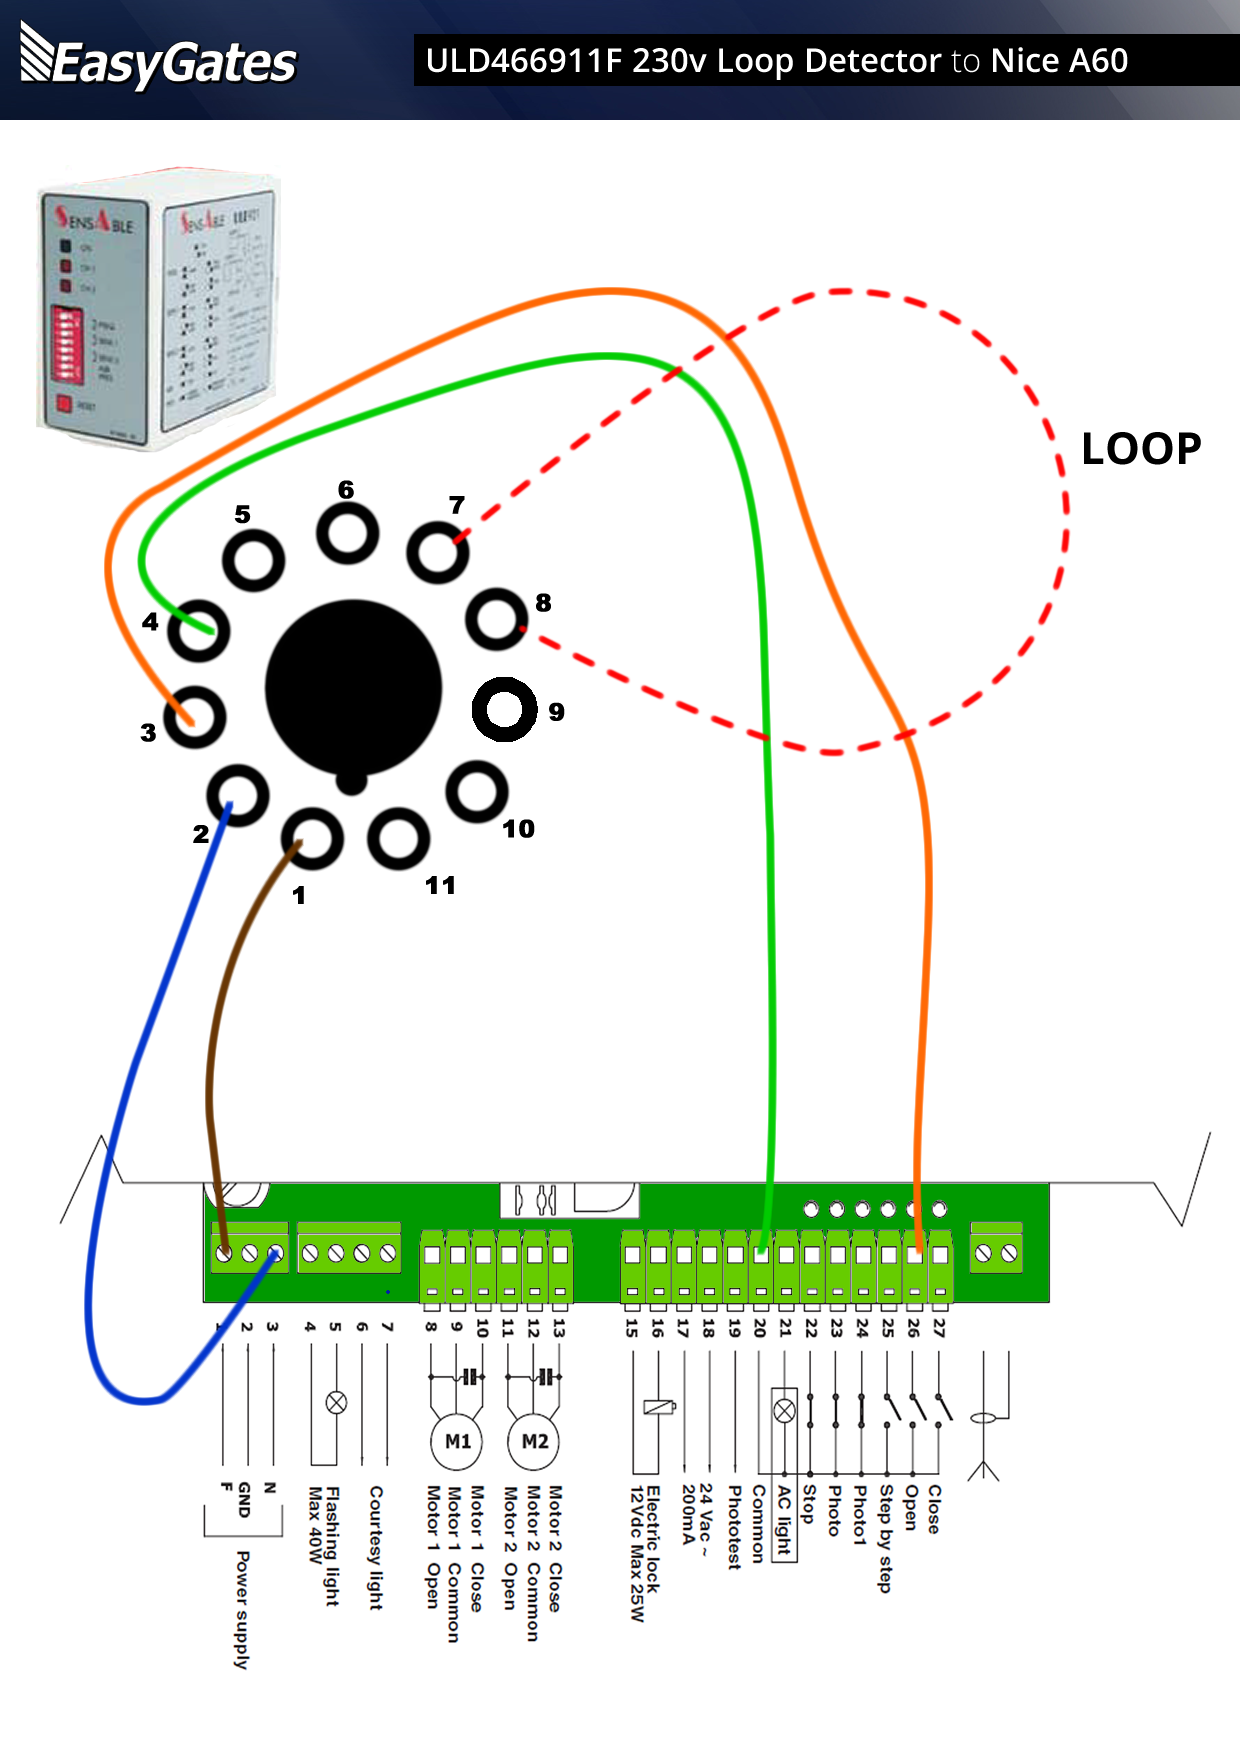 230volt Loop A60 Panel flattened 230 volt loop detector to nice a60 control board 5R55E Transmission Wiring Diagram at reclaimingppi.co